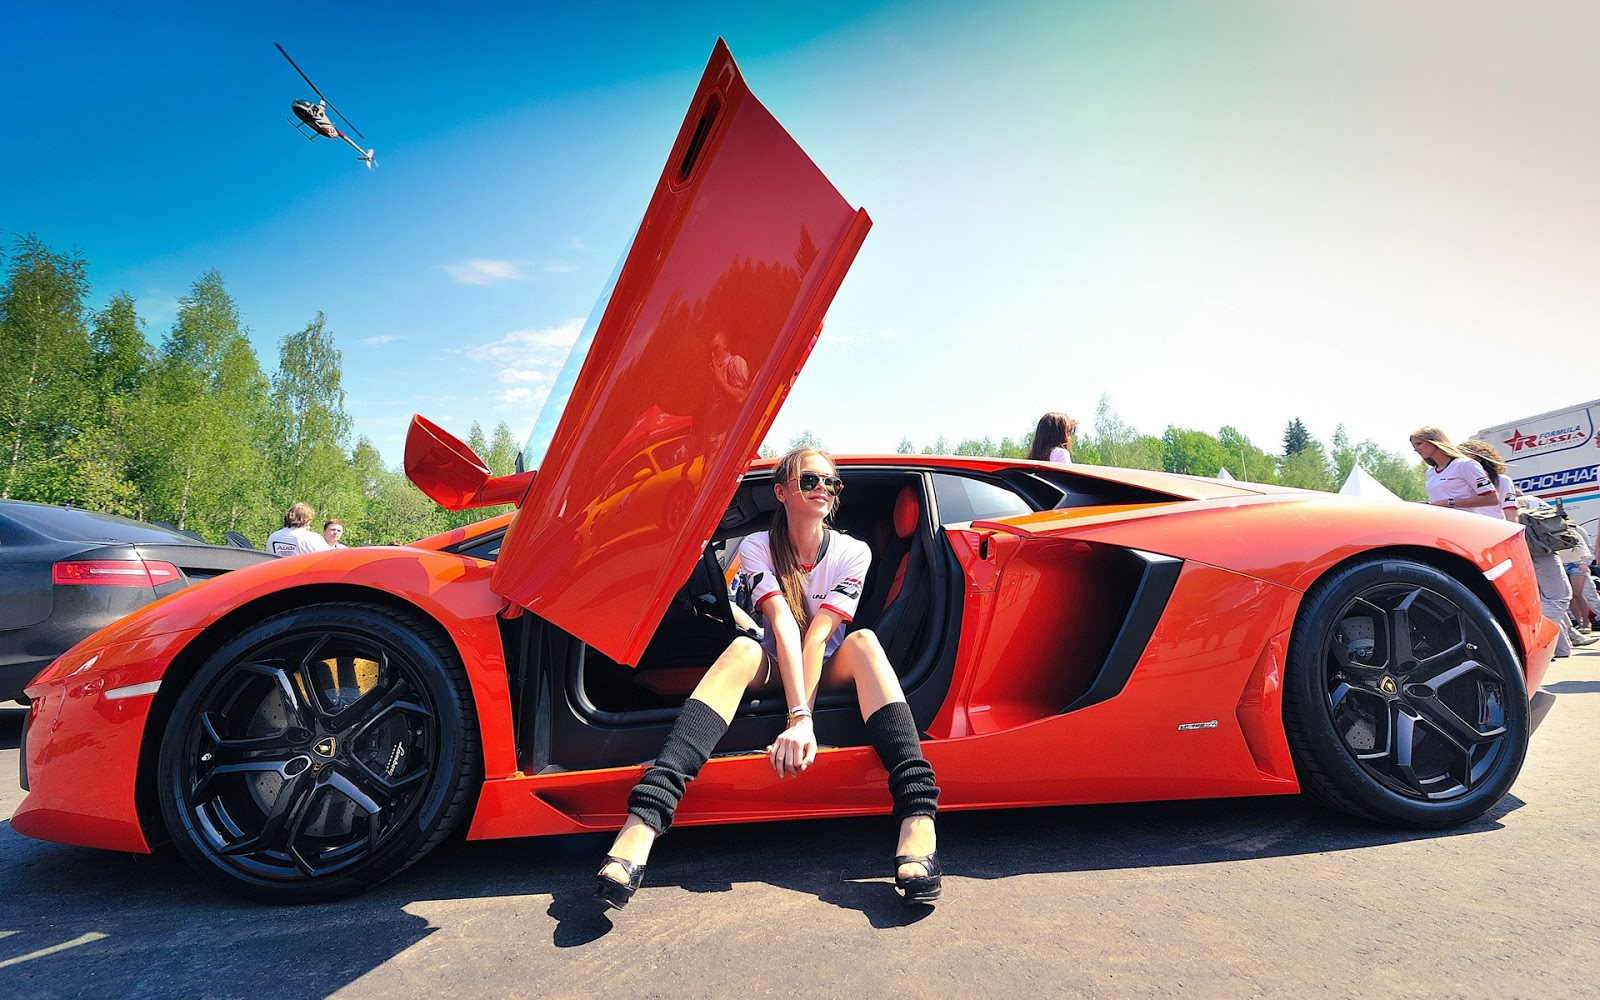 hot-stylish-girl-with-supercar-awesome-photography-images.jpg